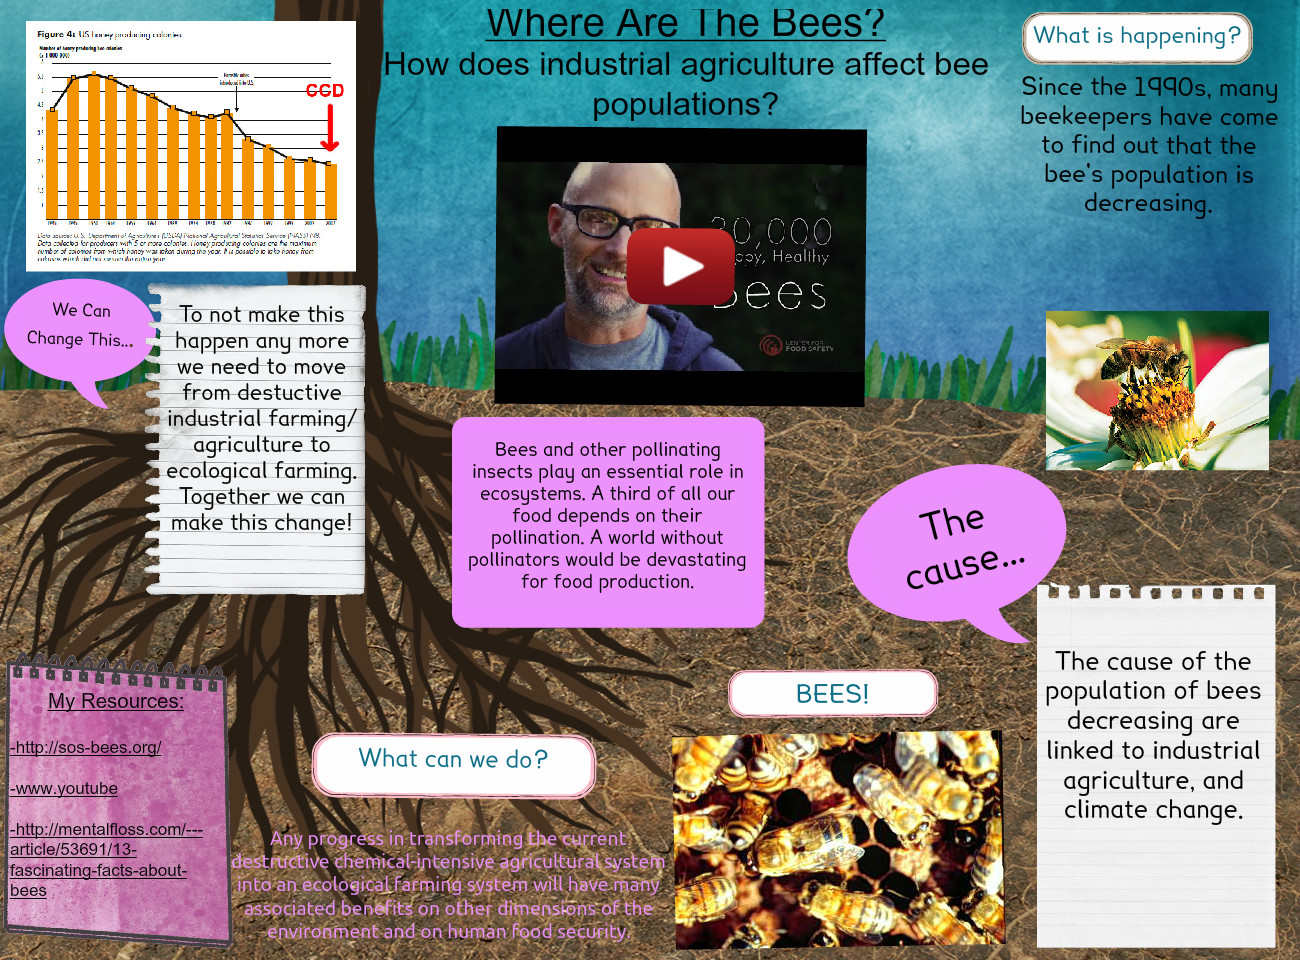 Where are the Bees?: animals, bees, decreasing, en, environmental